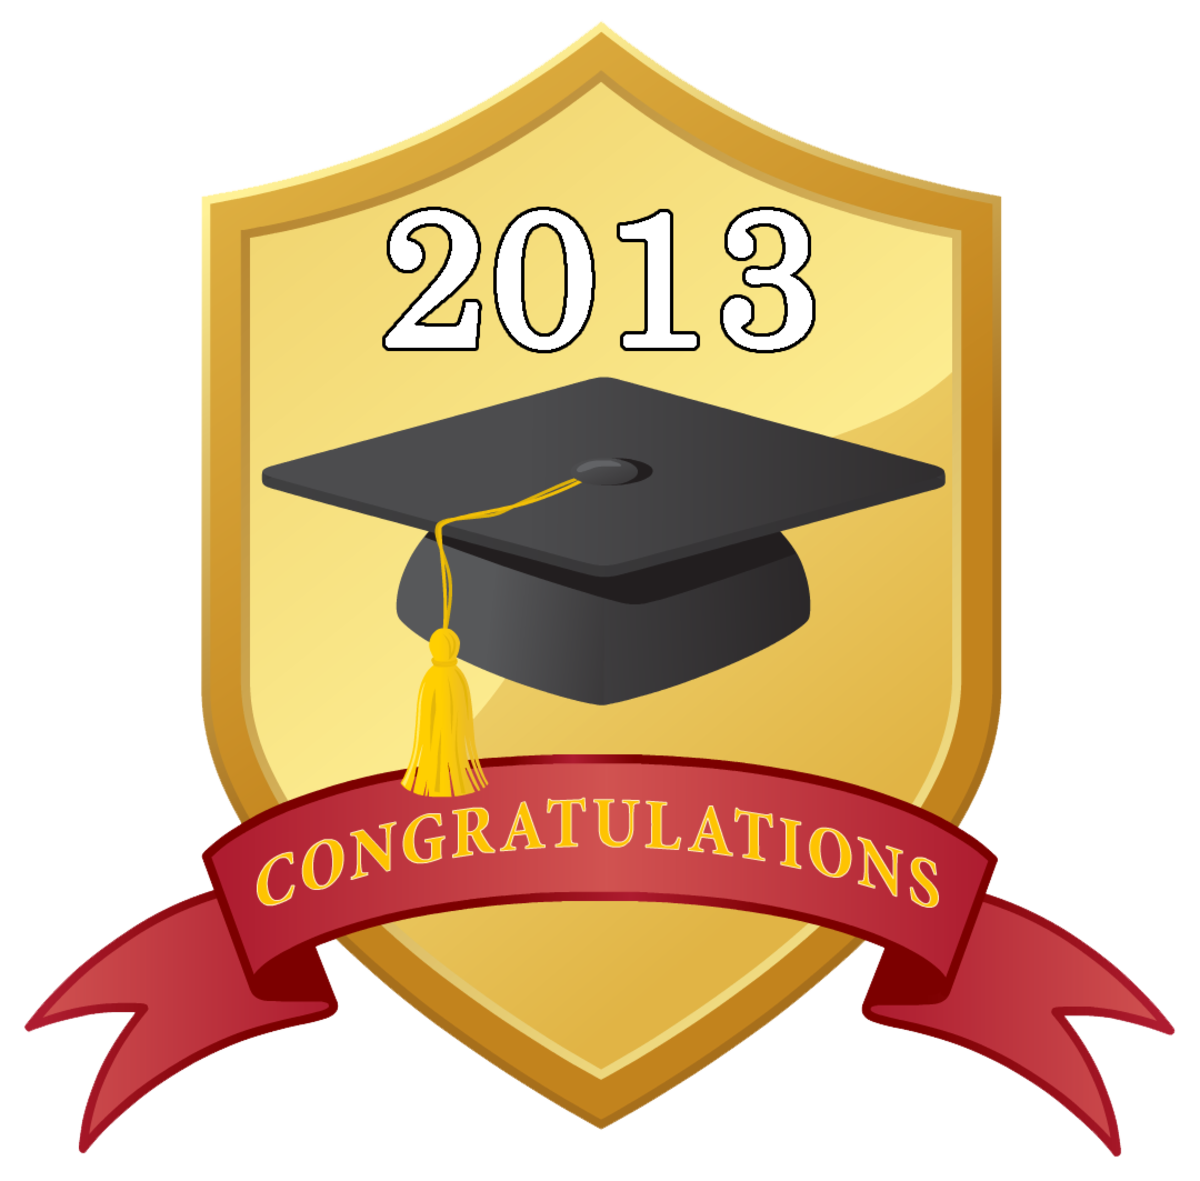 graduation scrapbook embellishment: 2013 shield with graduation hat